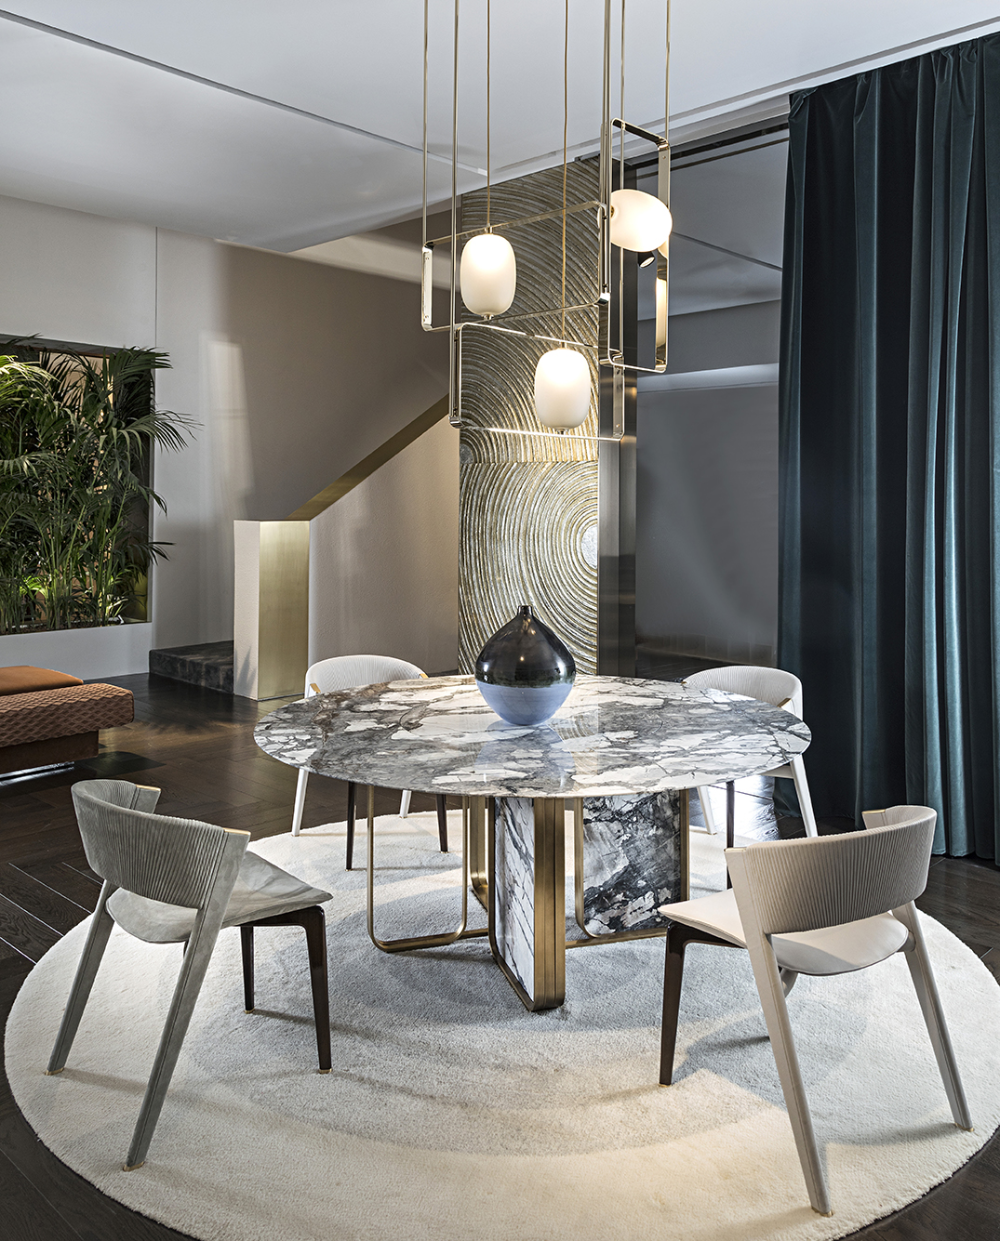 34+ Nova dining table and chairs Best